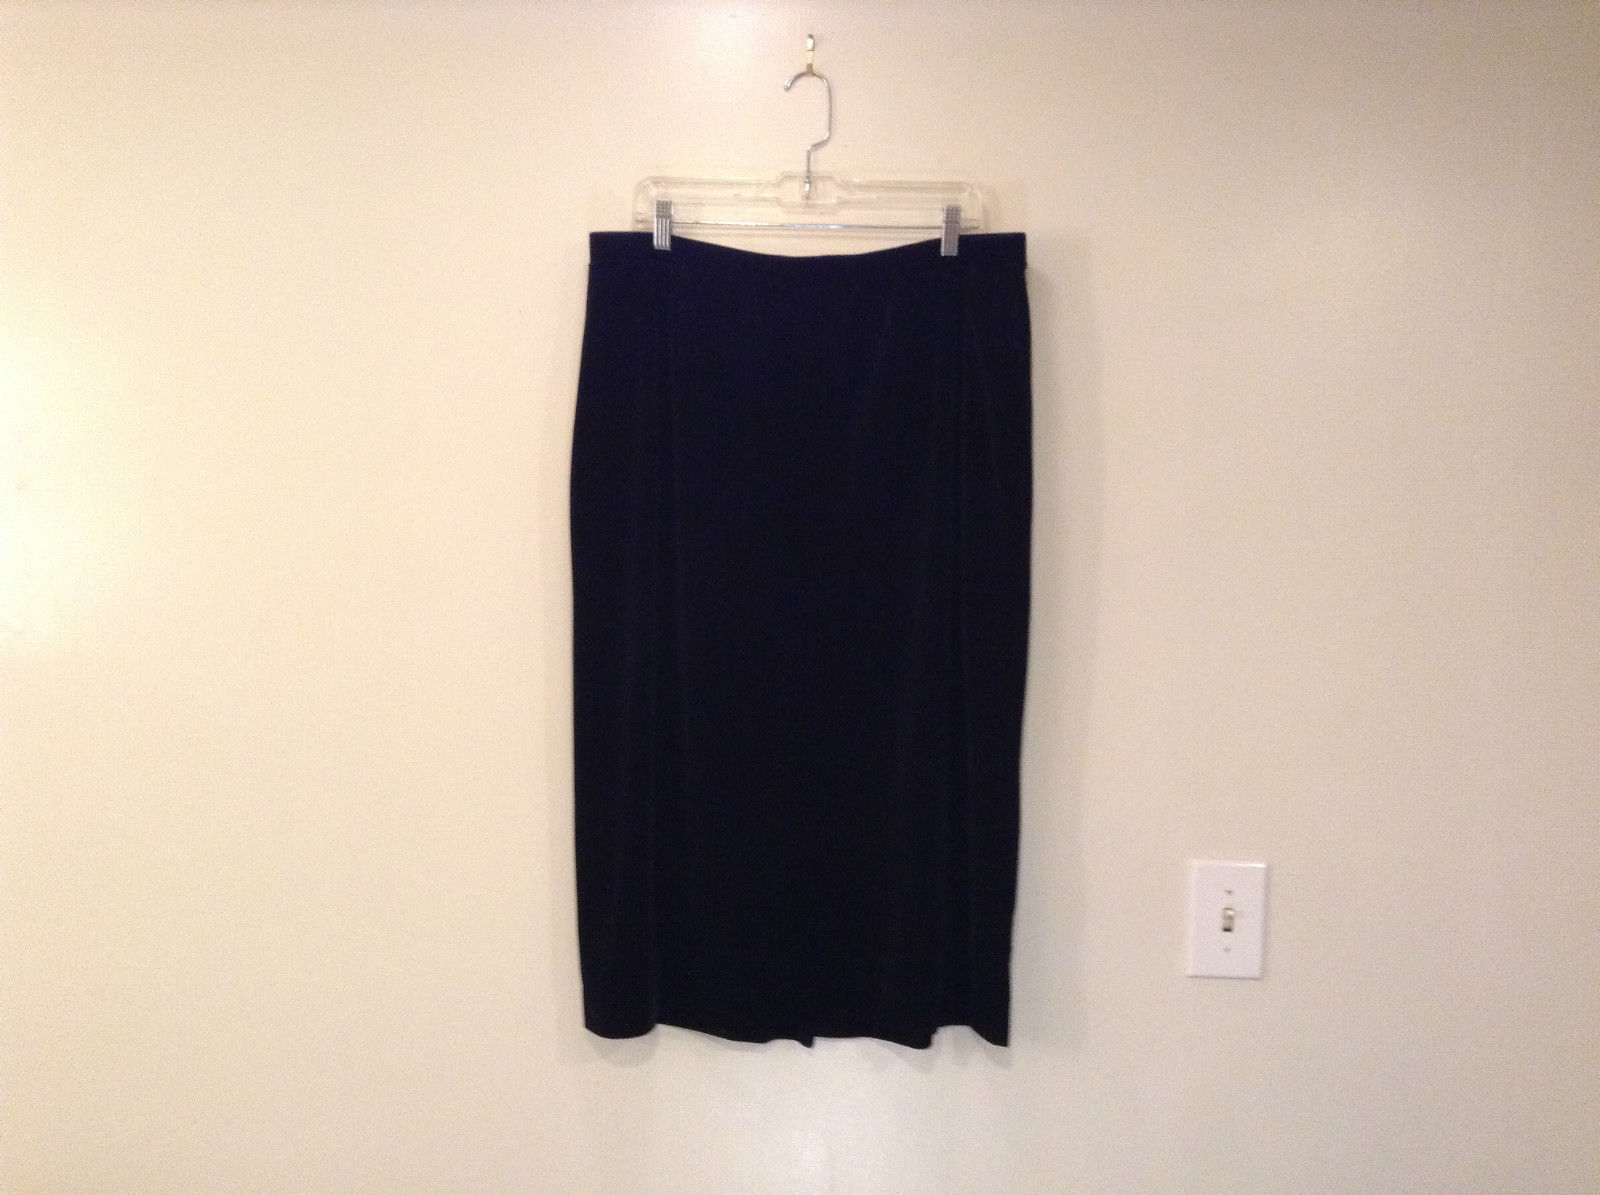 Black Annex Casual Corner Velvet Skirt Size 1X Elastic Waist Slits Back and Side